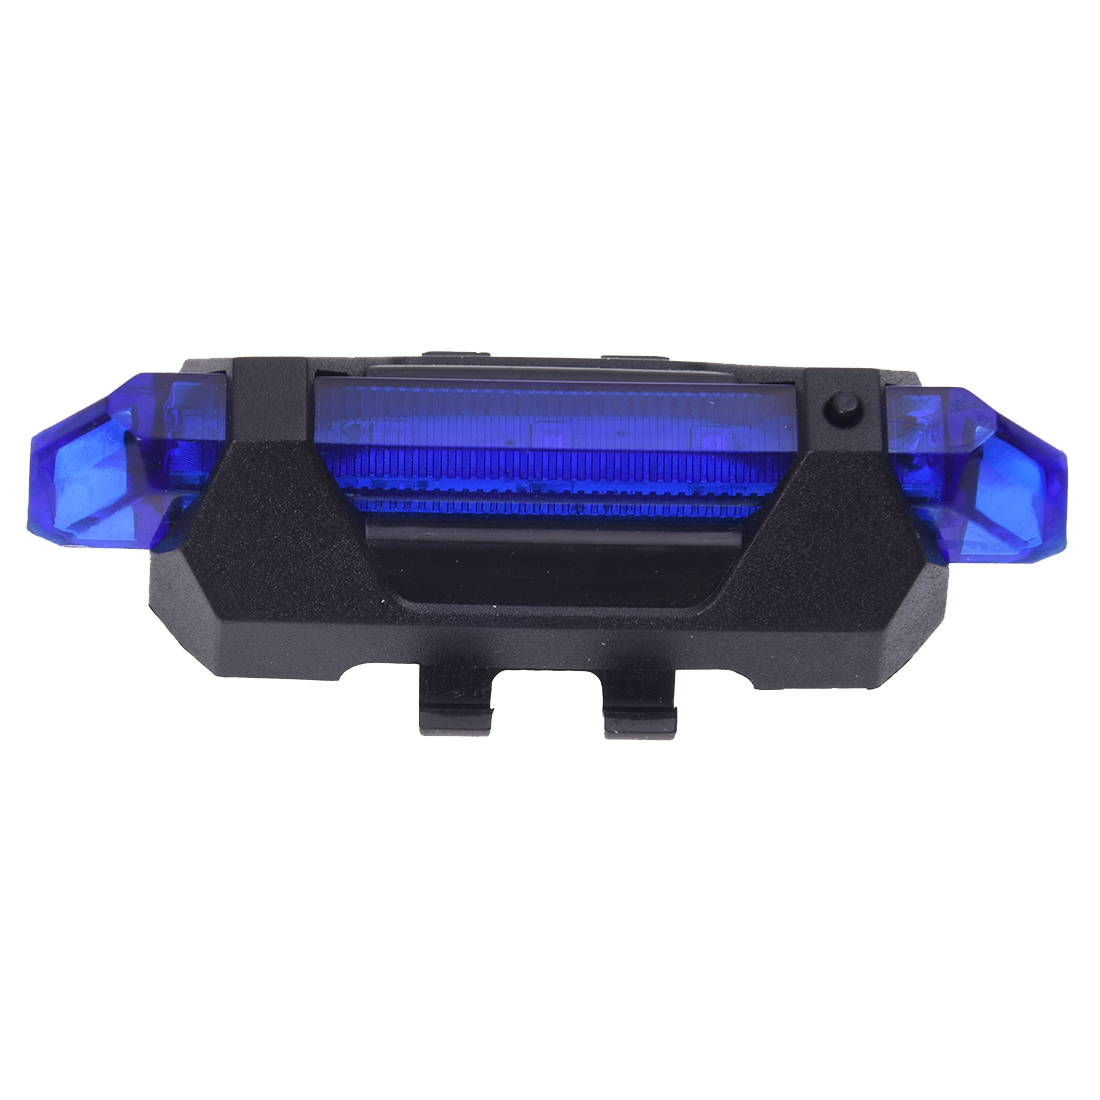 Good Deal 5LED Bicycle Rear Tail Lights Flash USB Rechargeable Bike Safety Lamp Waterproof Black+White Black+Red Black+Blue 6